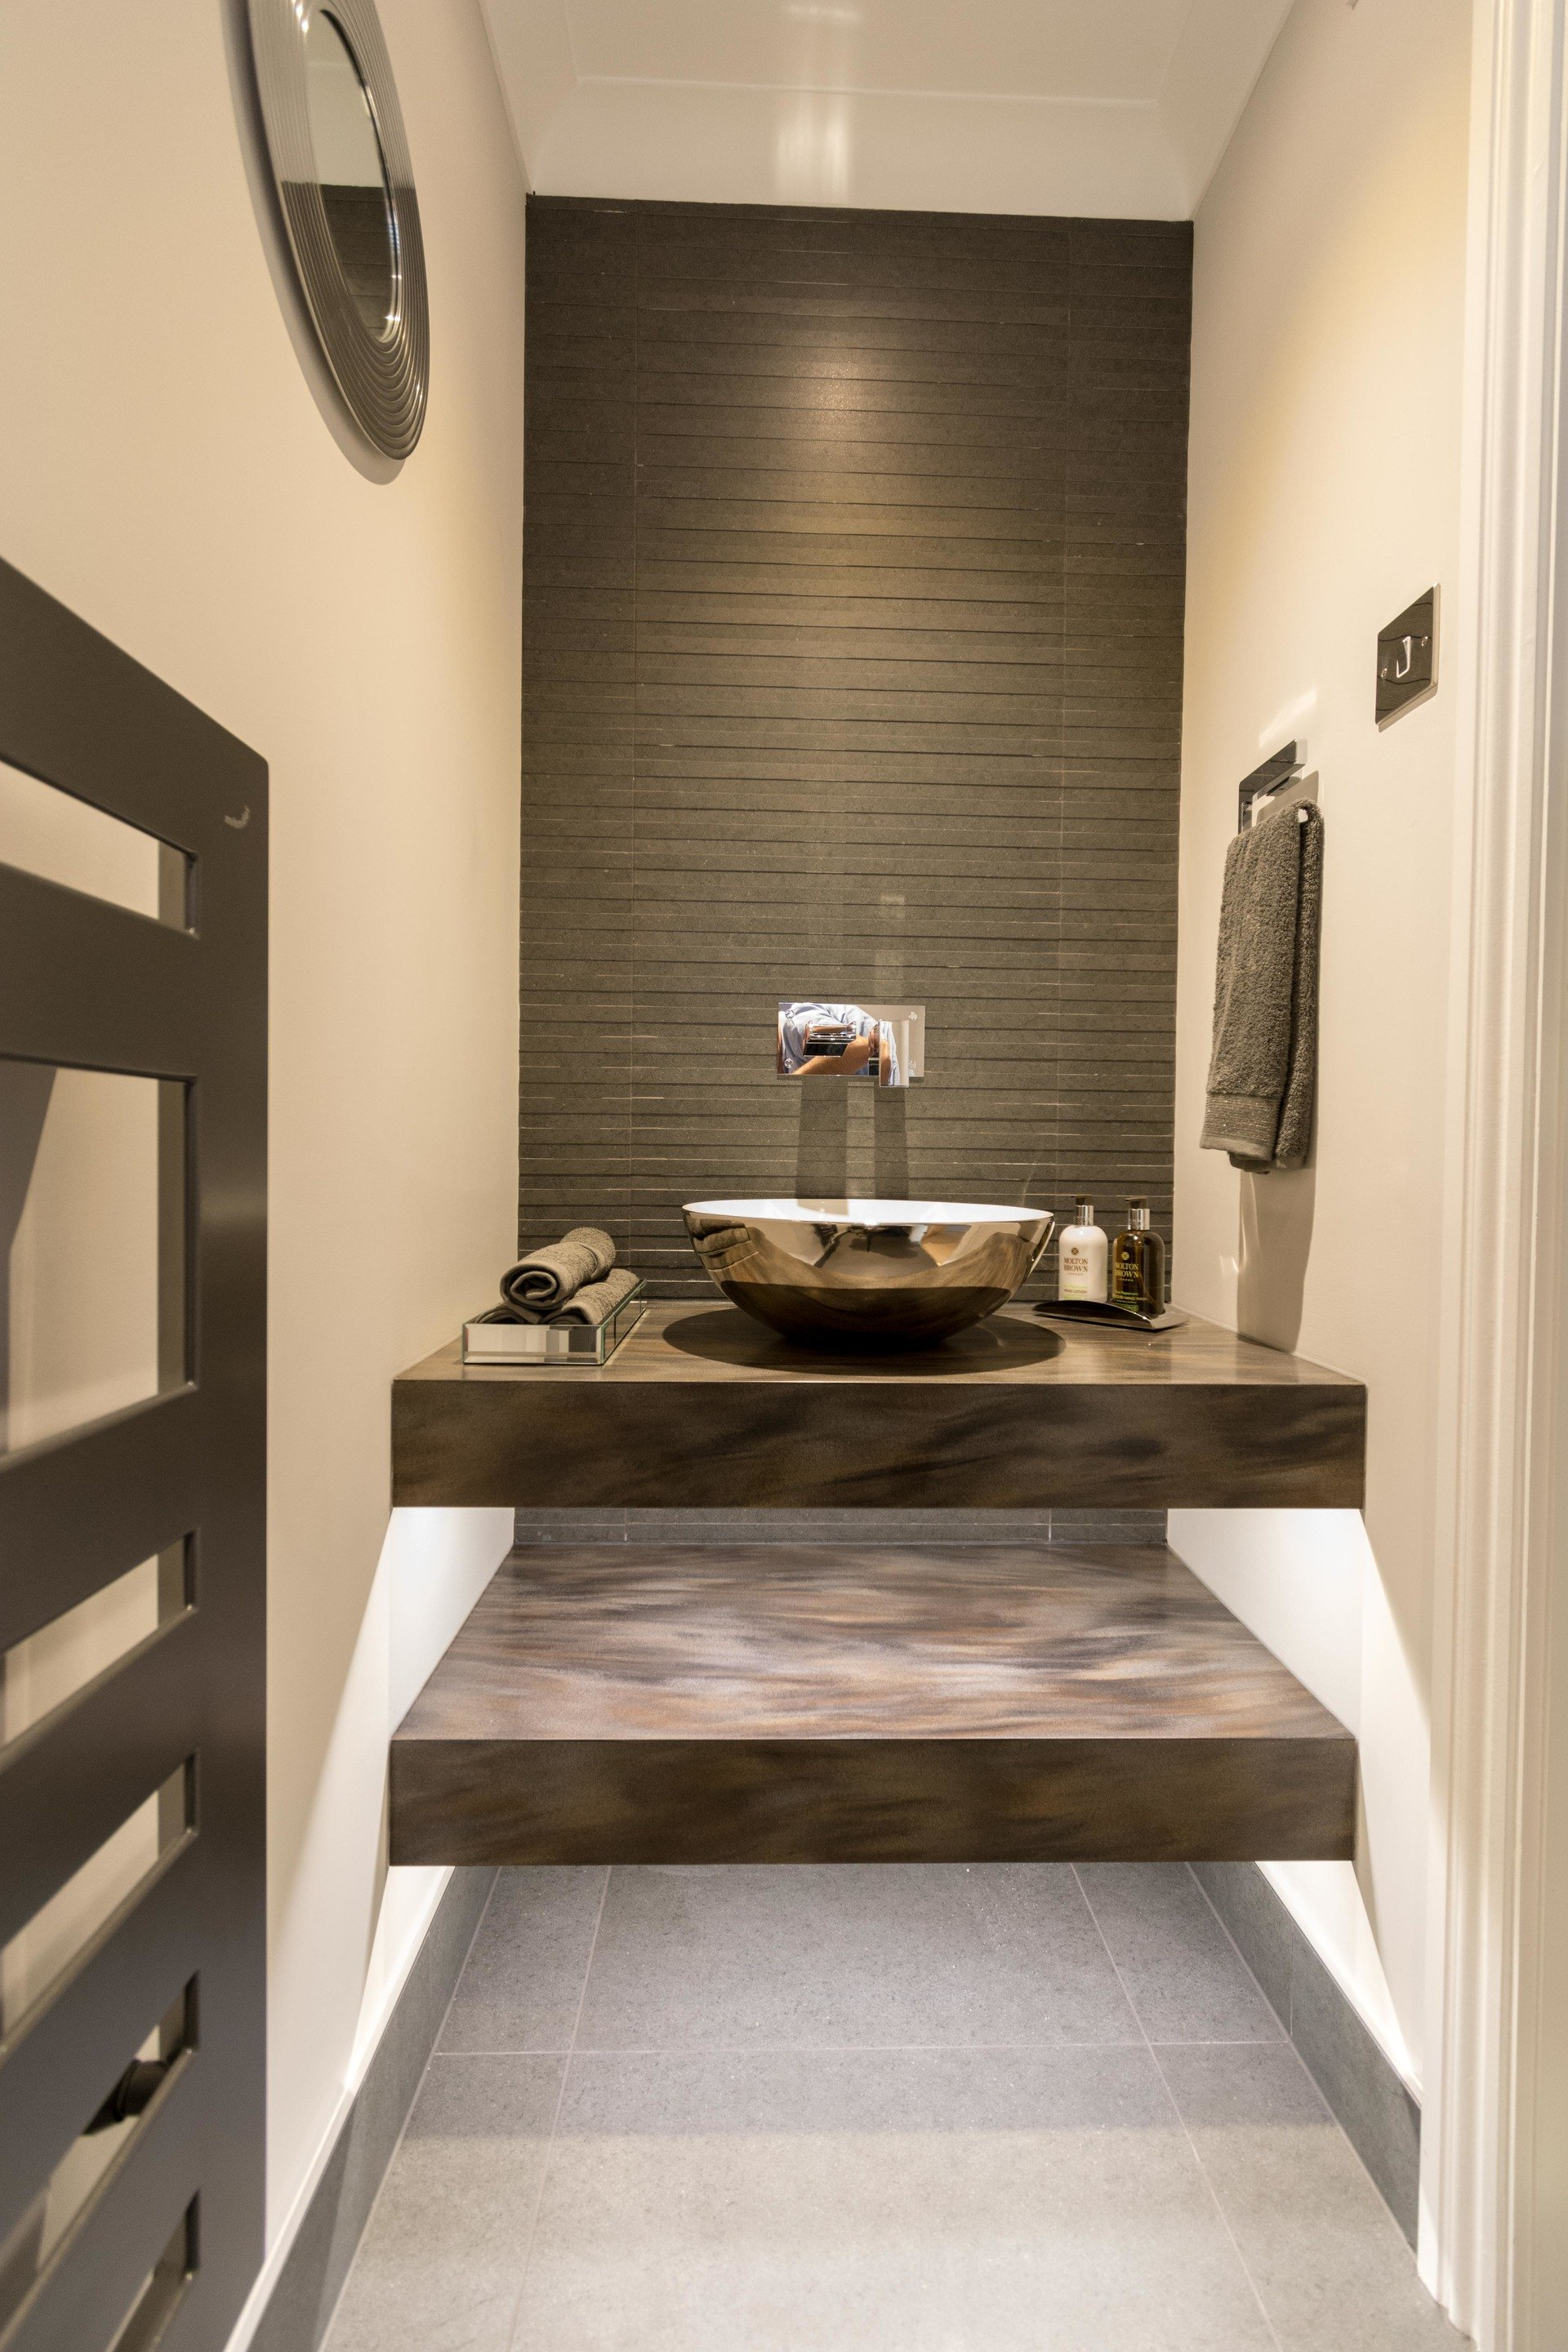 Cloakroom Ideas To Make Your Smallest Room The Most Impressive